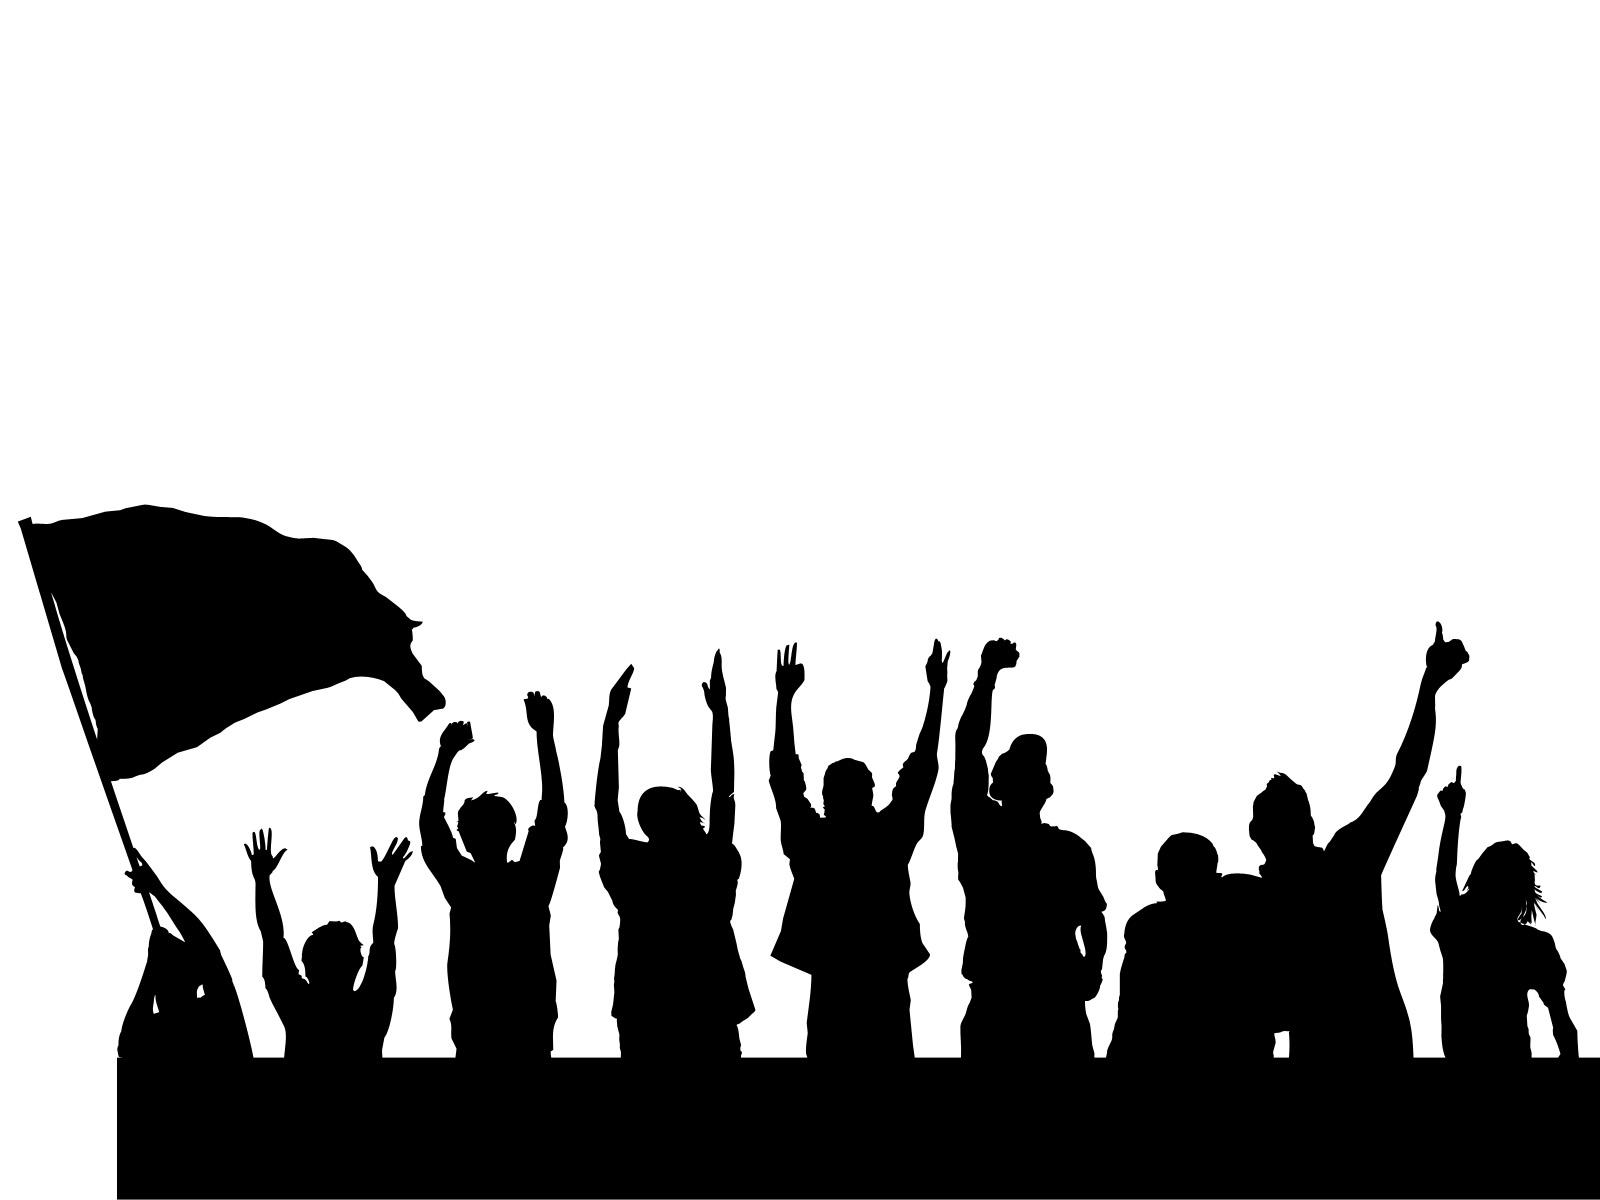 Clipart protest clip art free library Top protest clipart photos jpg - Clipartix clip art free library